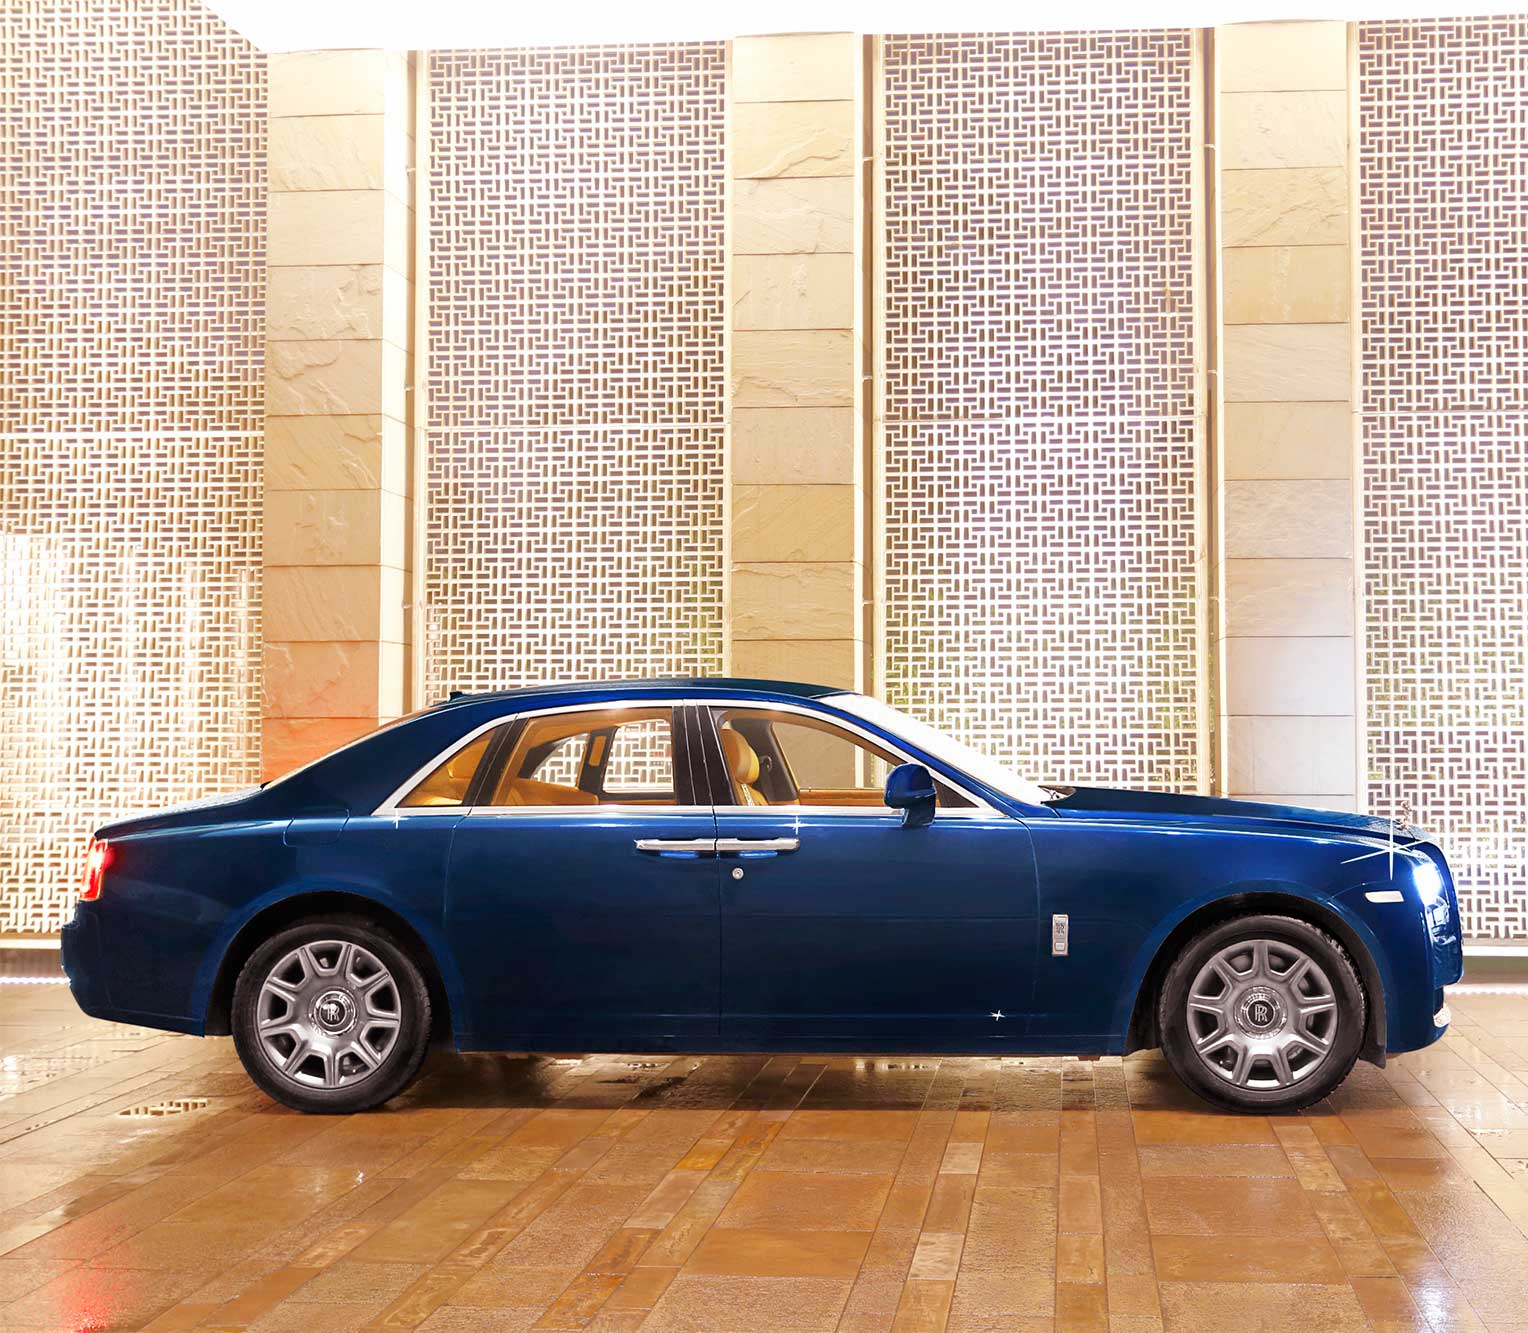 Rolls Royce Ghost 2 side view